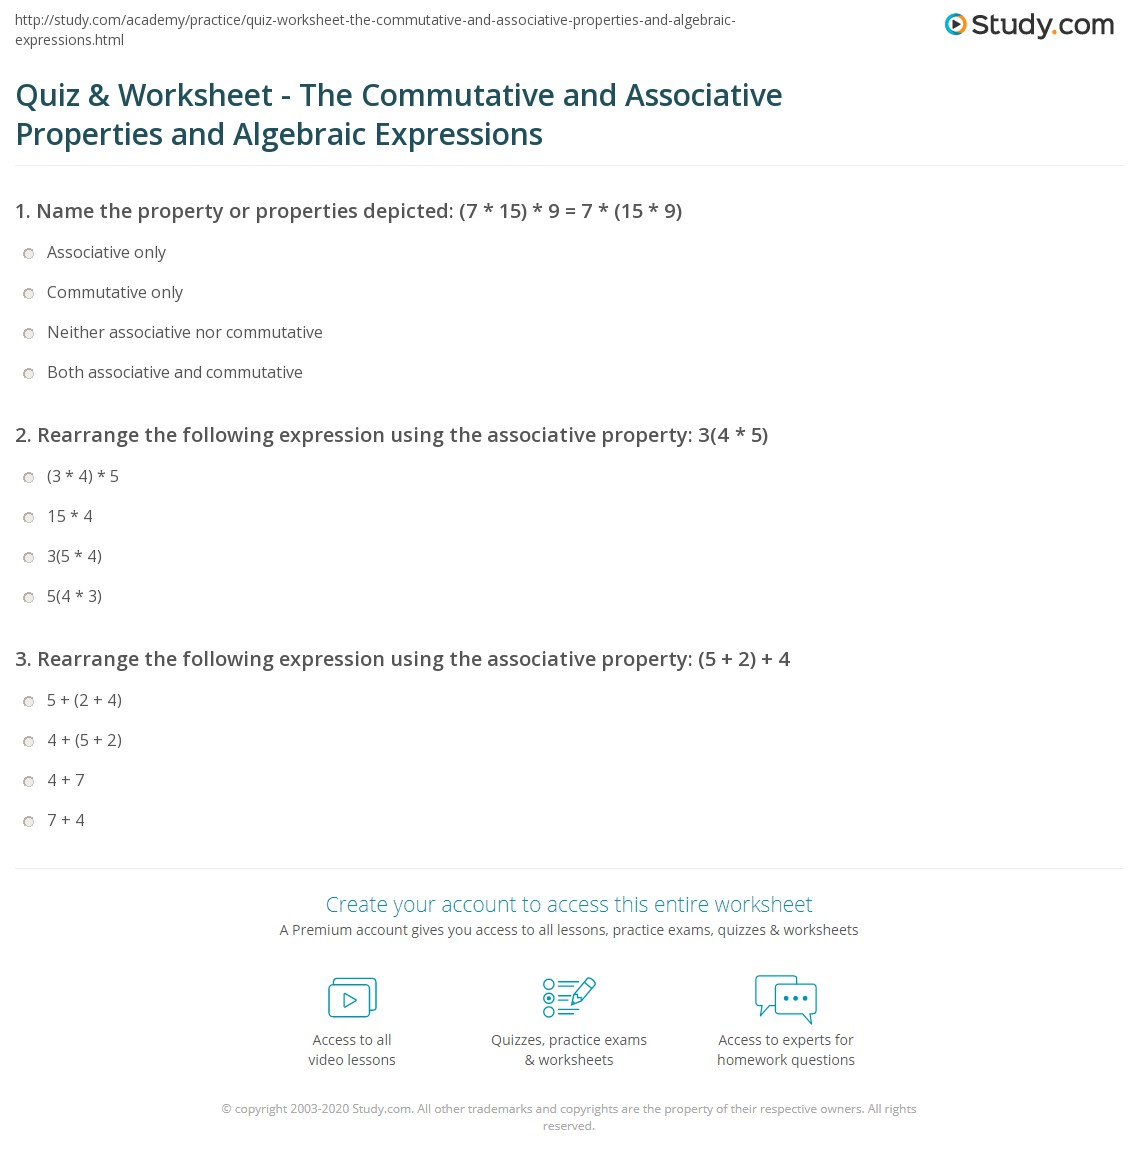 worksheet Commutative Associative And Distributive Properties Worksheet quiz worksheet the commutative and associative properties print algebraic expressions worksheet